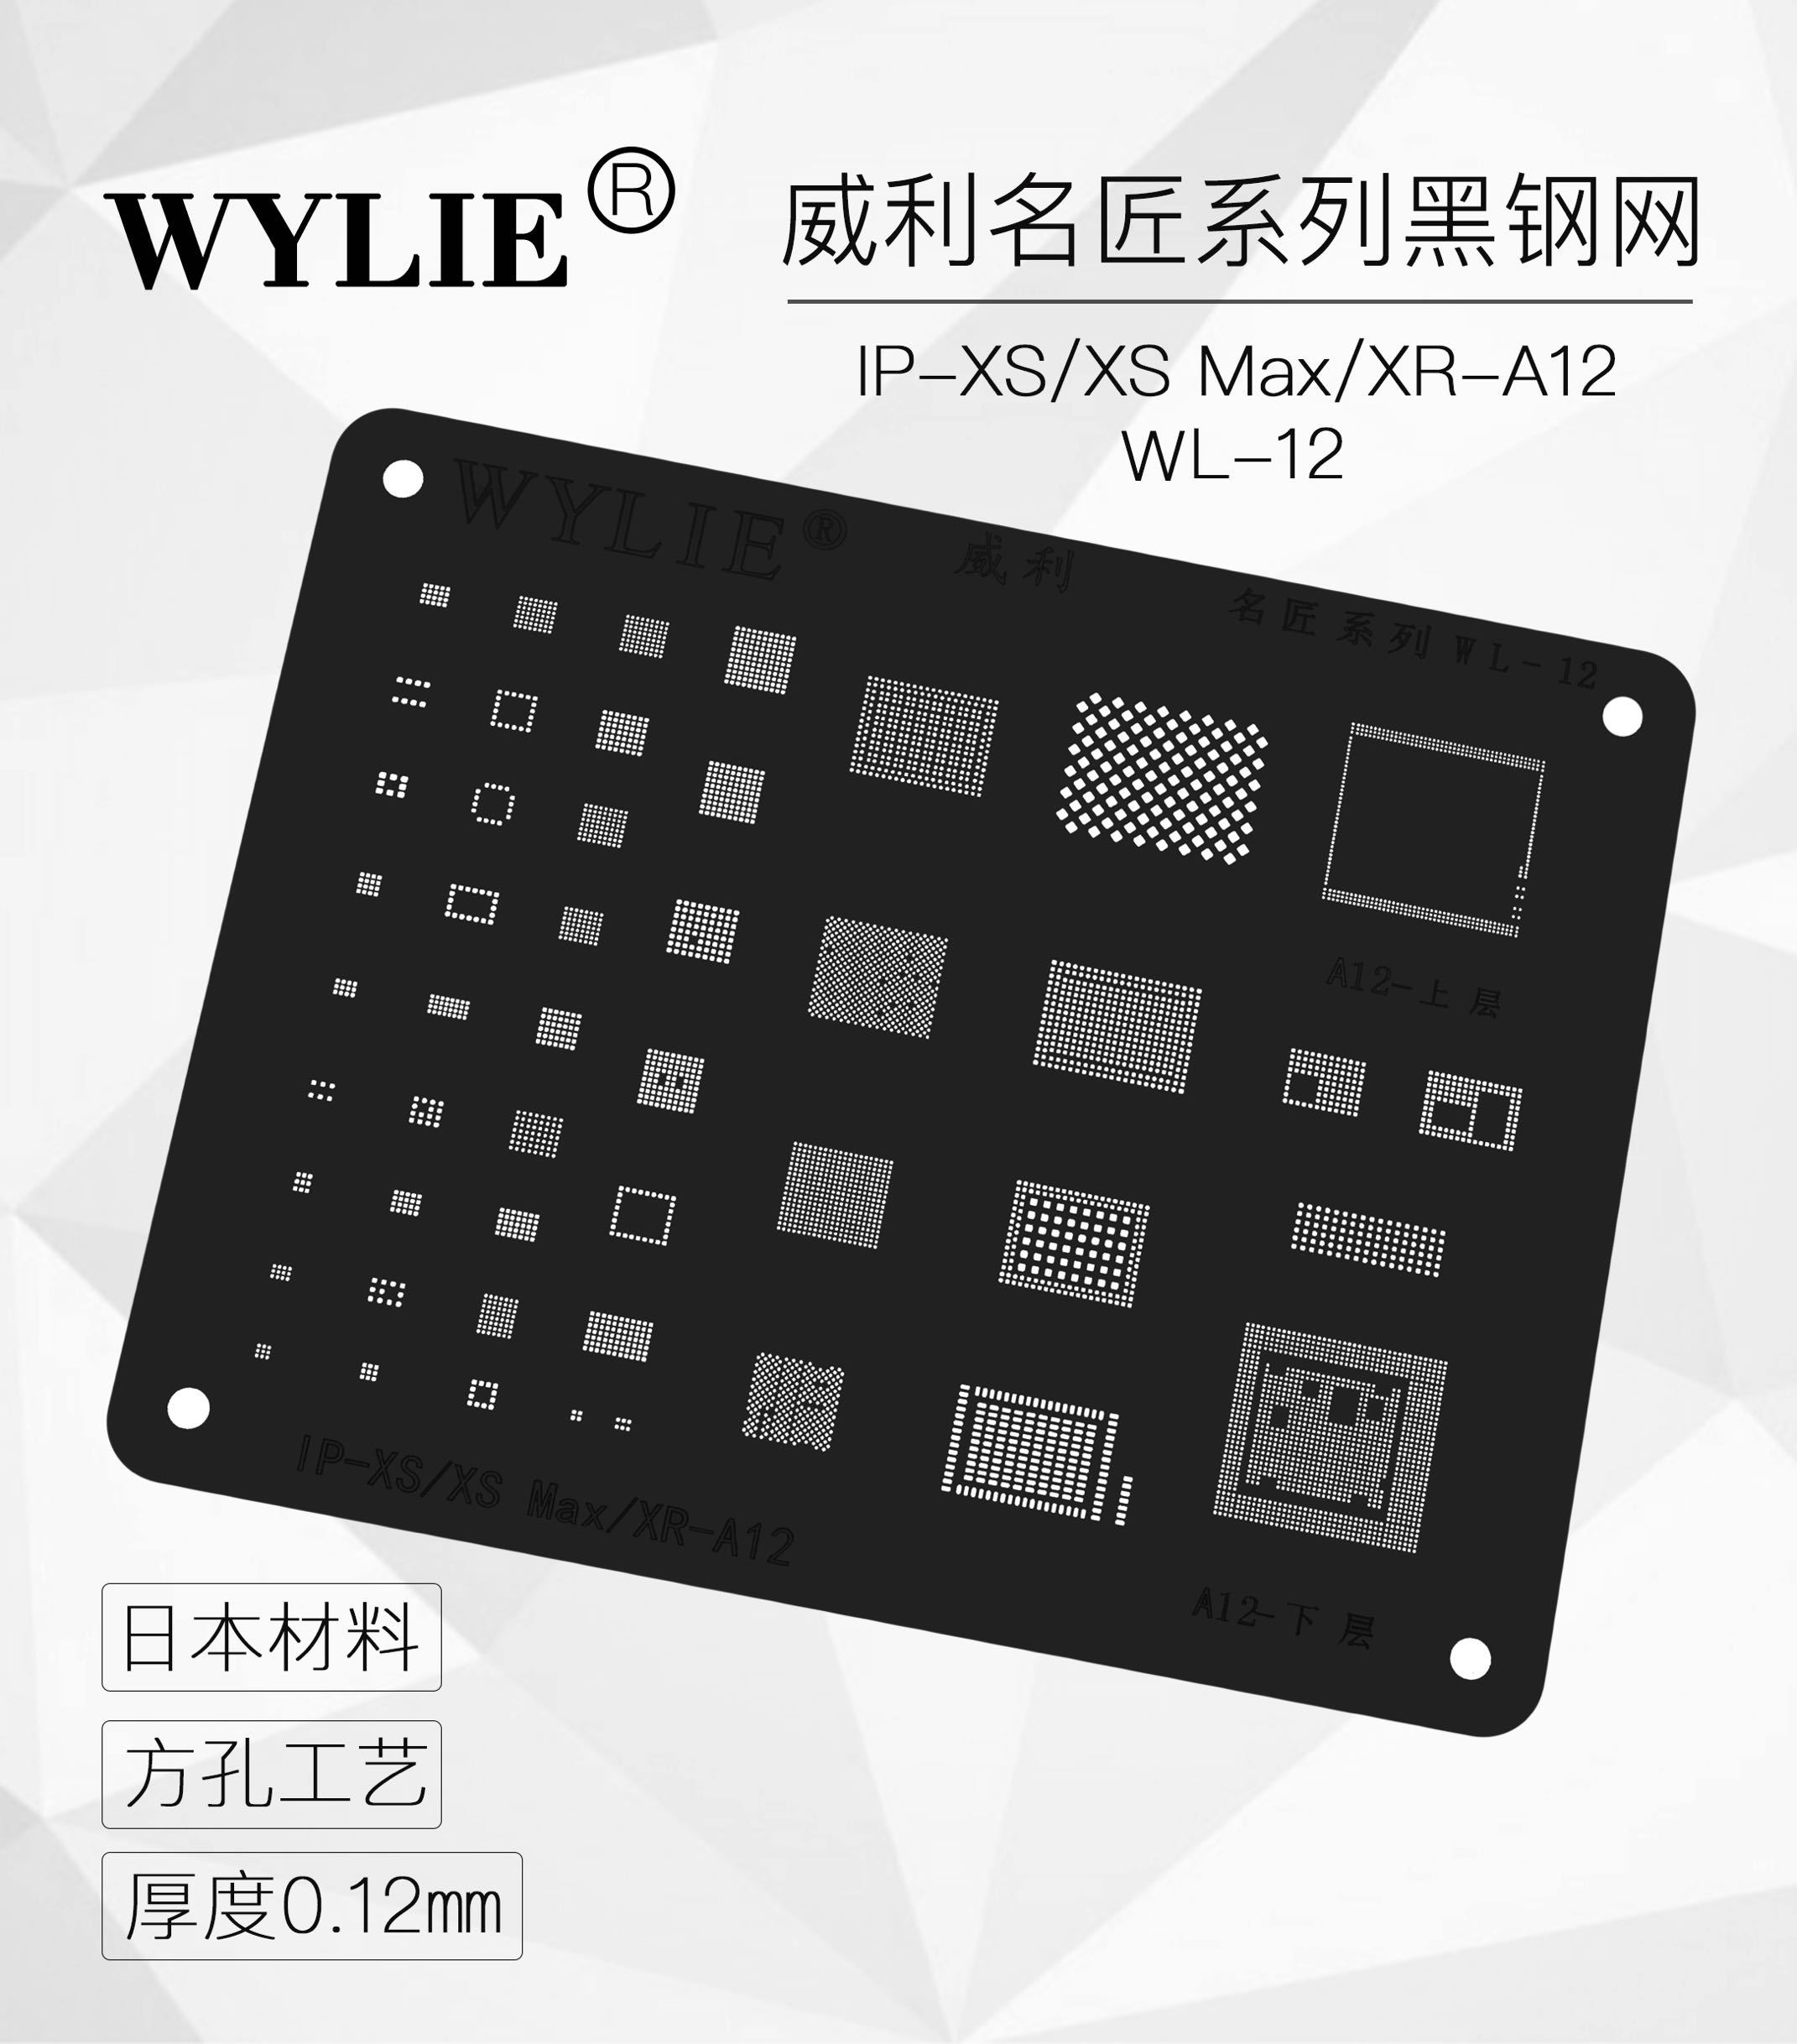 Wylie BGA Reballing Stencil for iphone 5 5s 6 6plus 6s 6splus 7 7plus 8/8 plus x xs max XR A13 A12 A11 A10 A9 A8 A7 CPU RAM chip 5